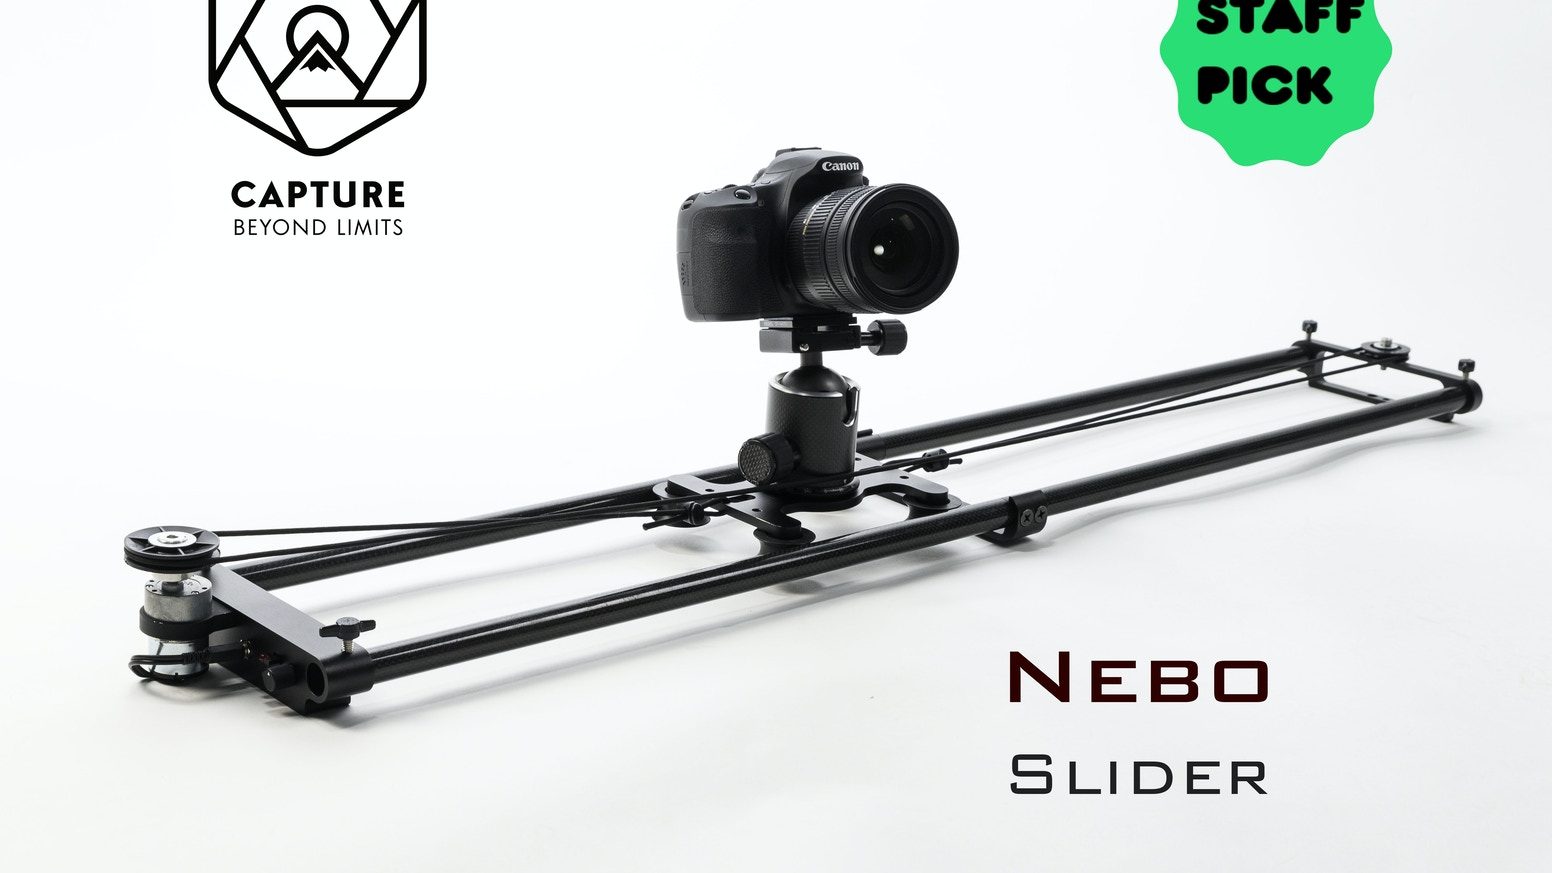 The world's most lightweight and portable motion controlled slider for video and timelapse photography. Now available through our website and ships within 2-5 business days.